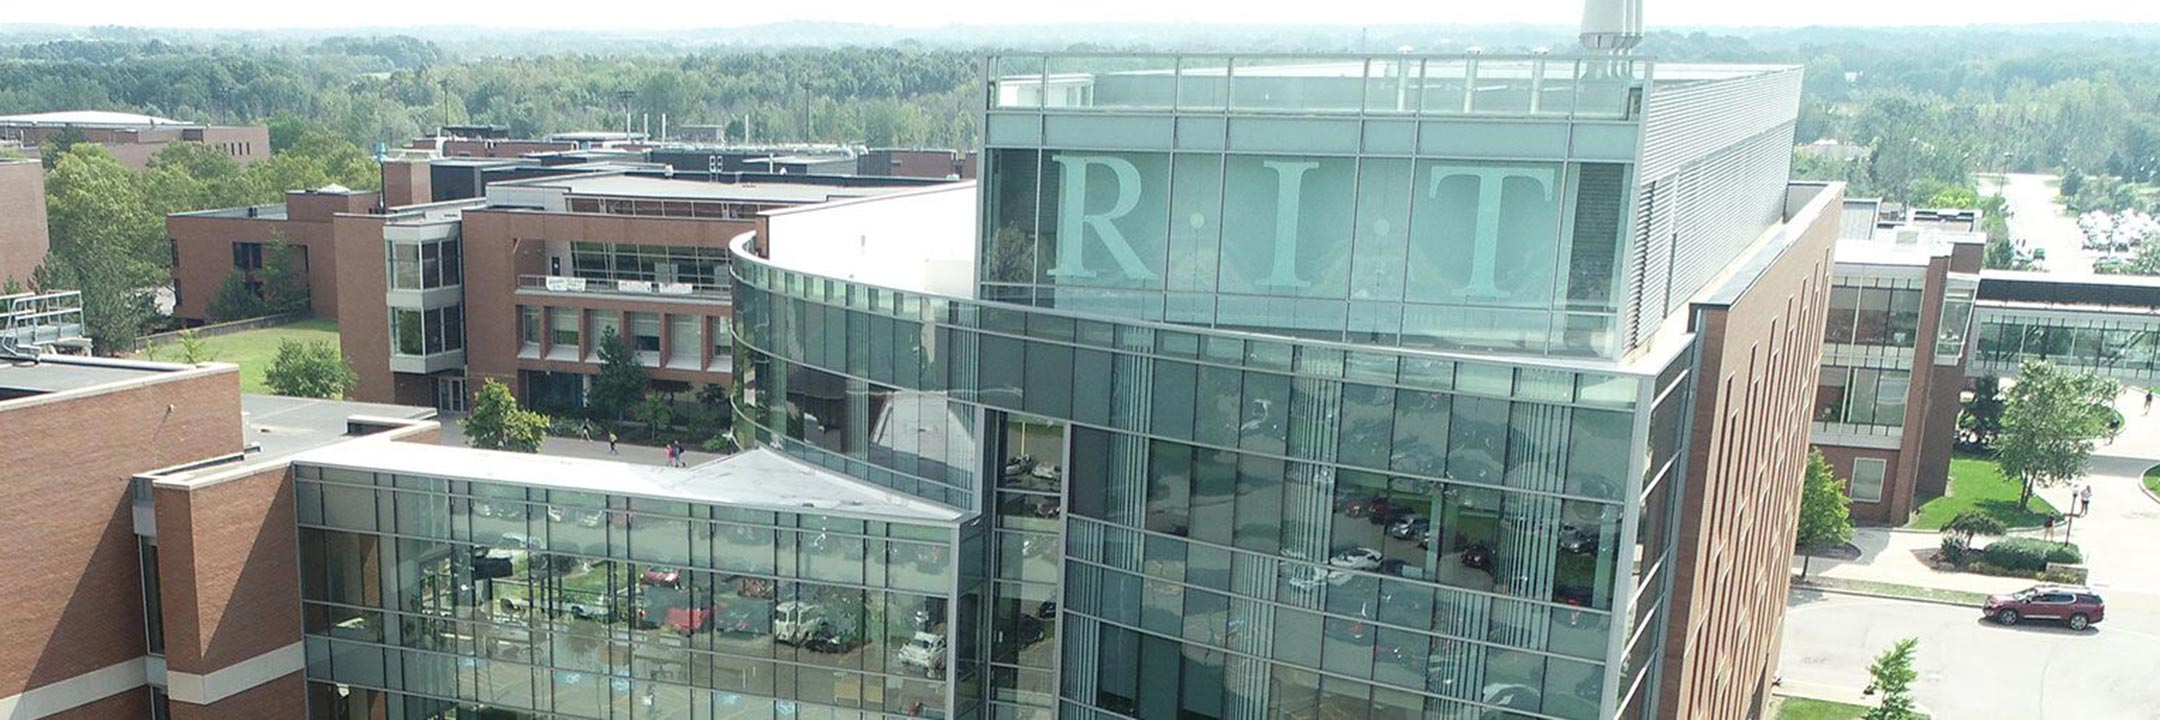 aerial photo of the campus center at RIT